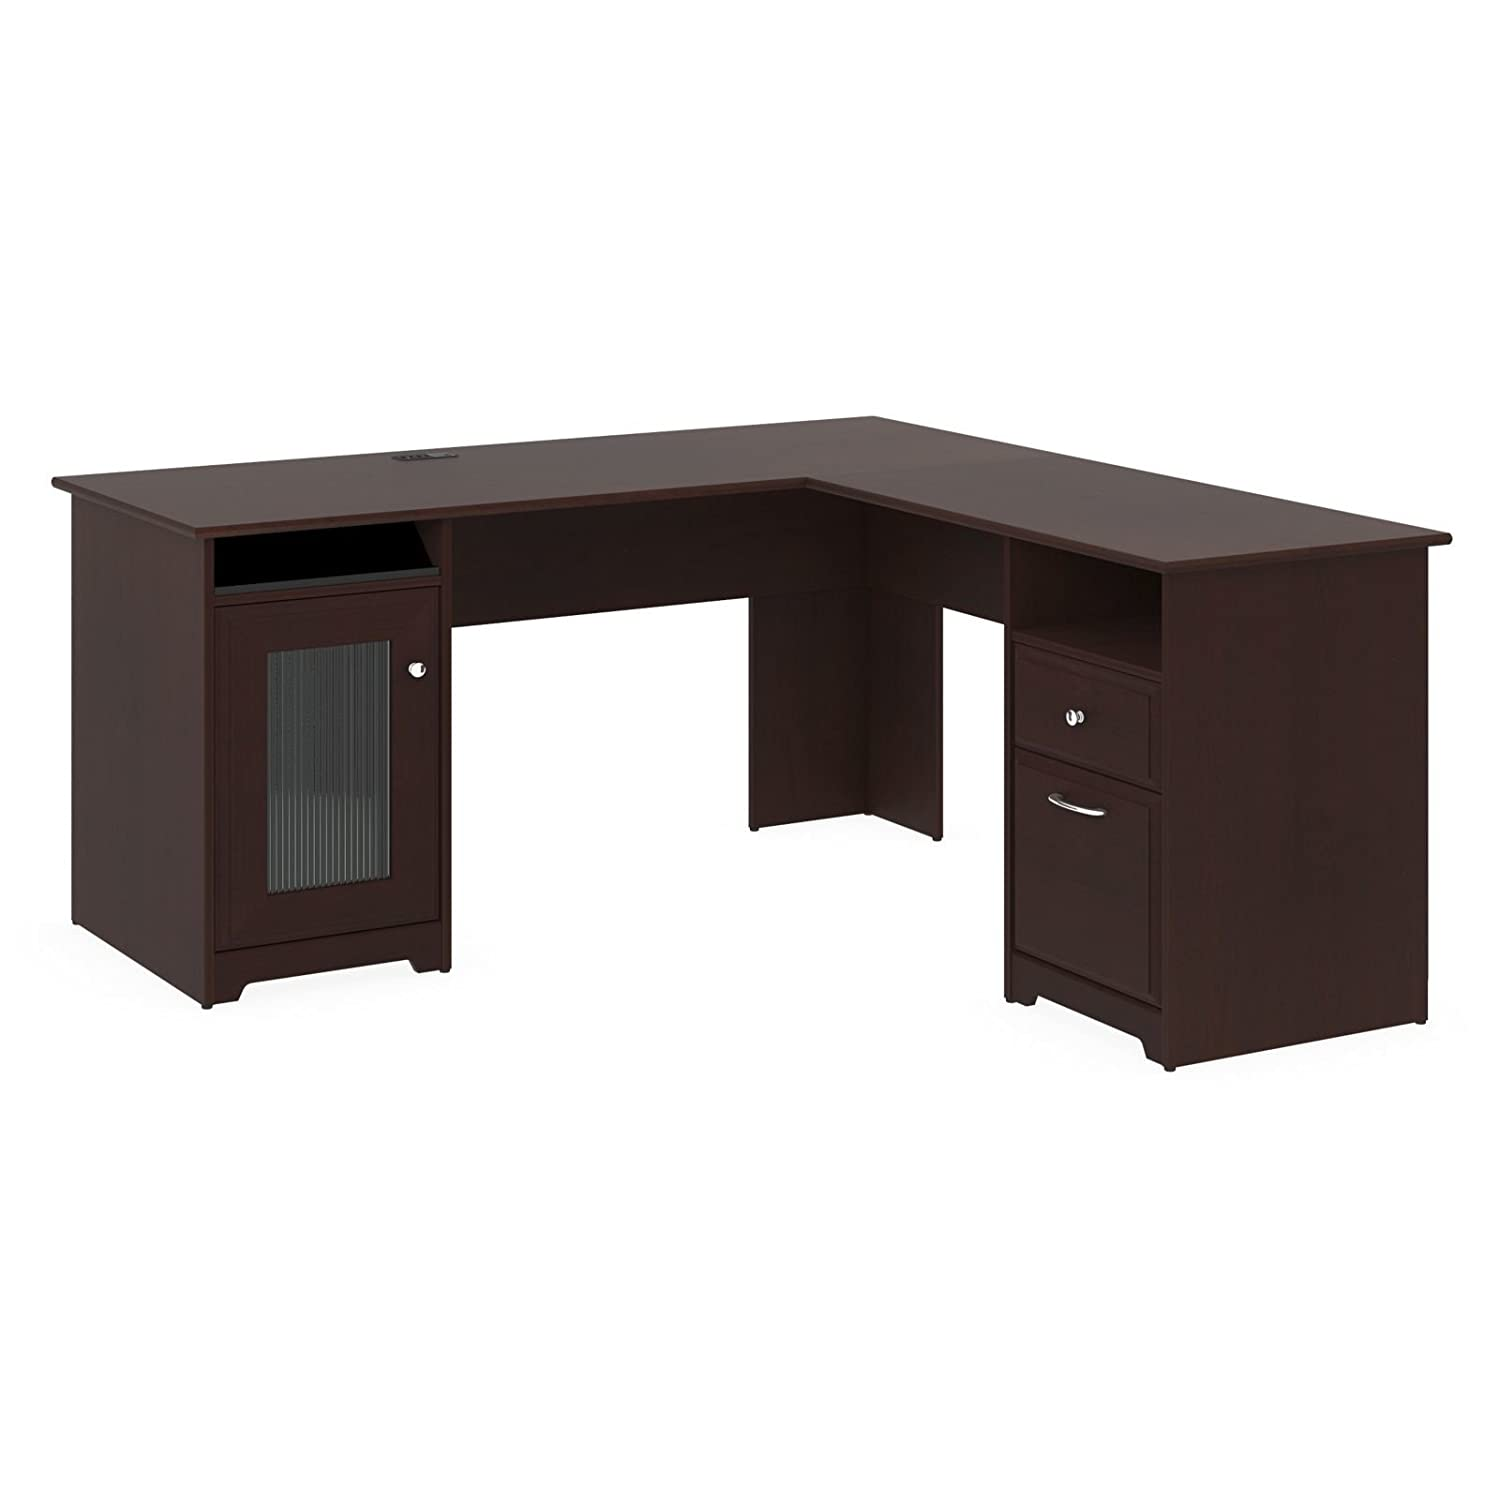 home office l shaped desks. amazoncom premium lshaped desk modern stylish executive table storage organization home office free ebook harvest cherry kitchen u0026 dining l shaped desks